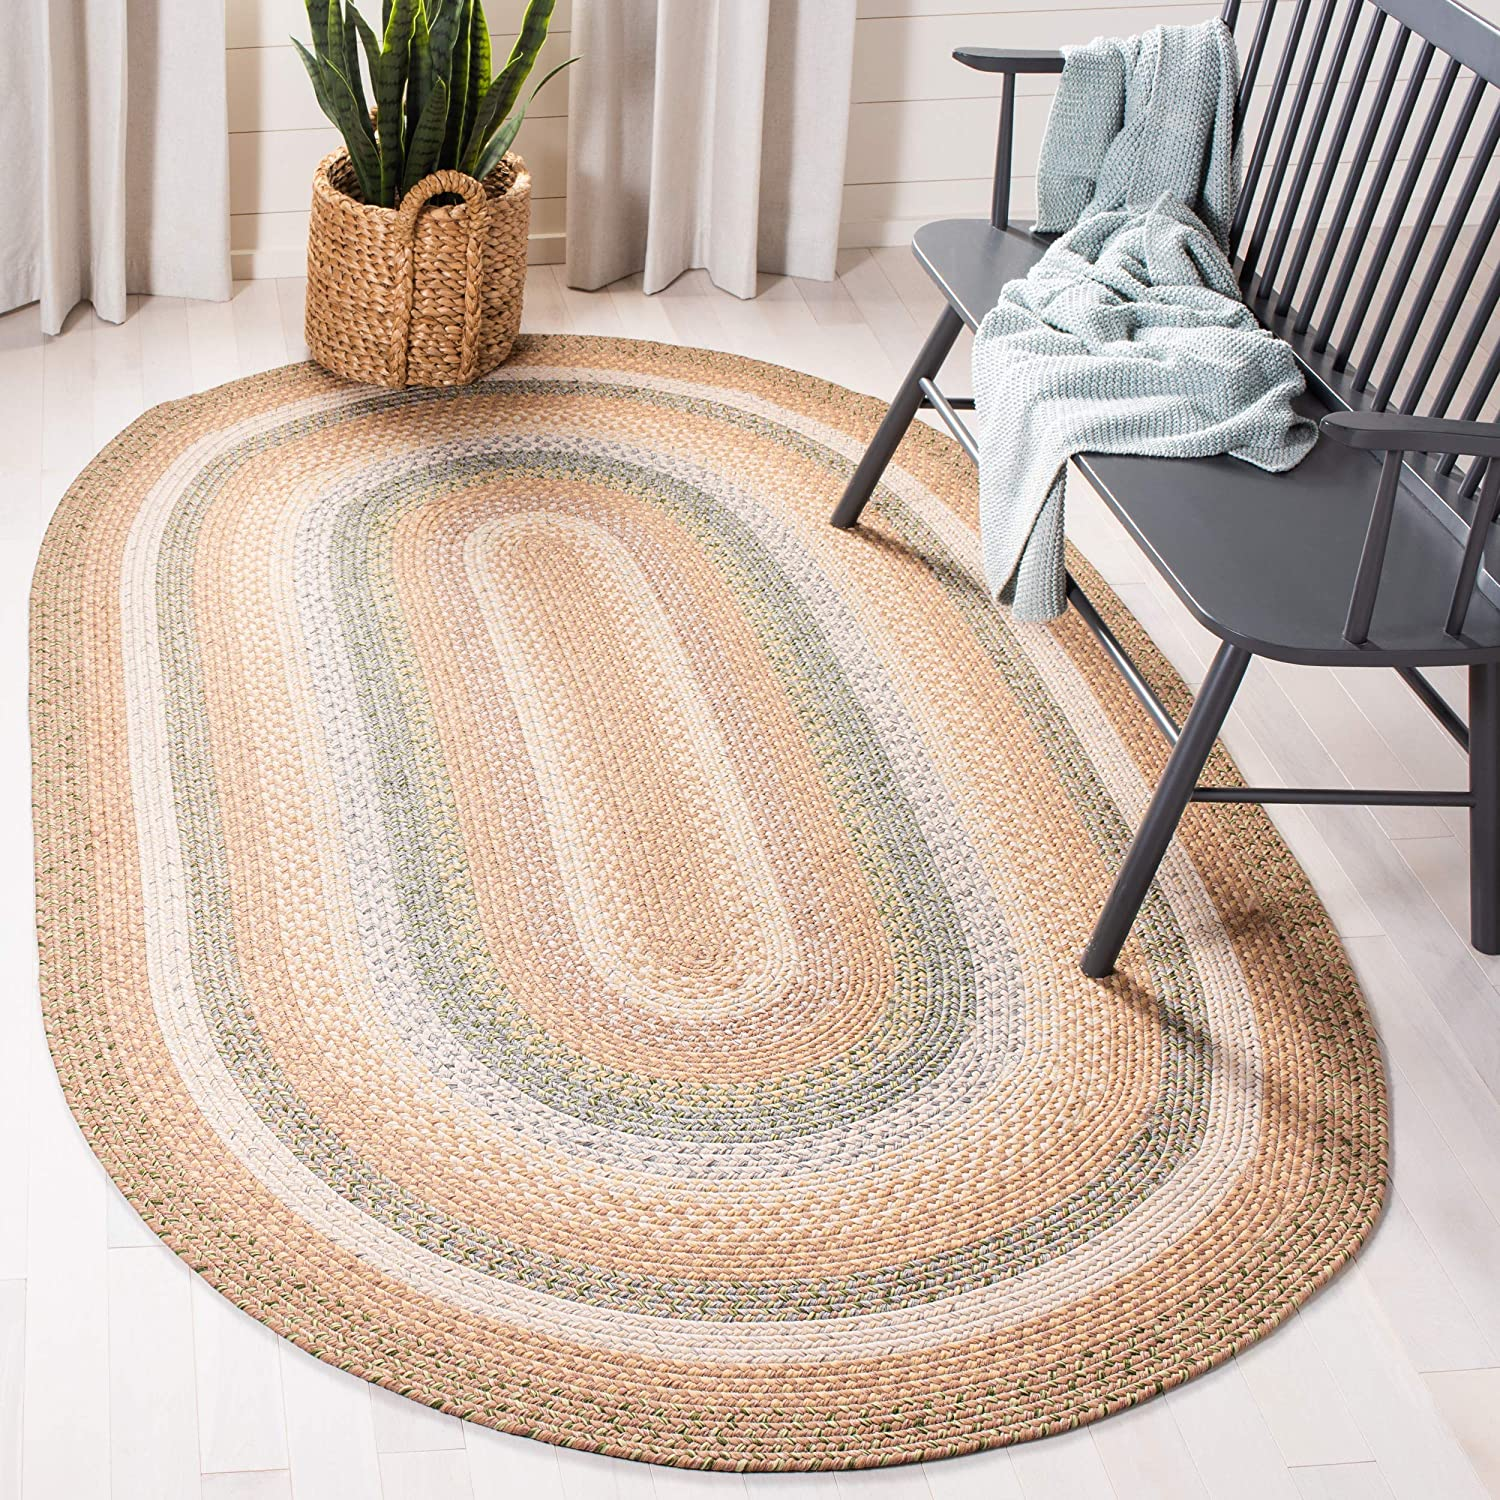 Safavieh Braided Collection BRD314A Hand Woven Tan and Multi Oval Area Rug (6' x 9' Oval)